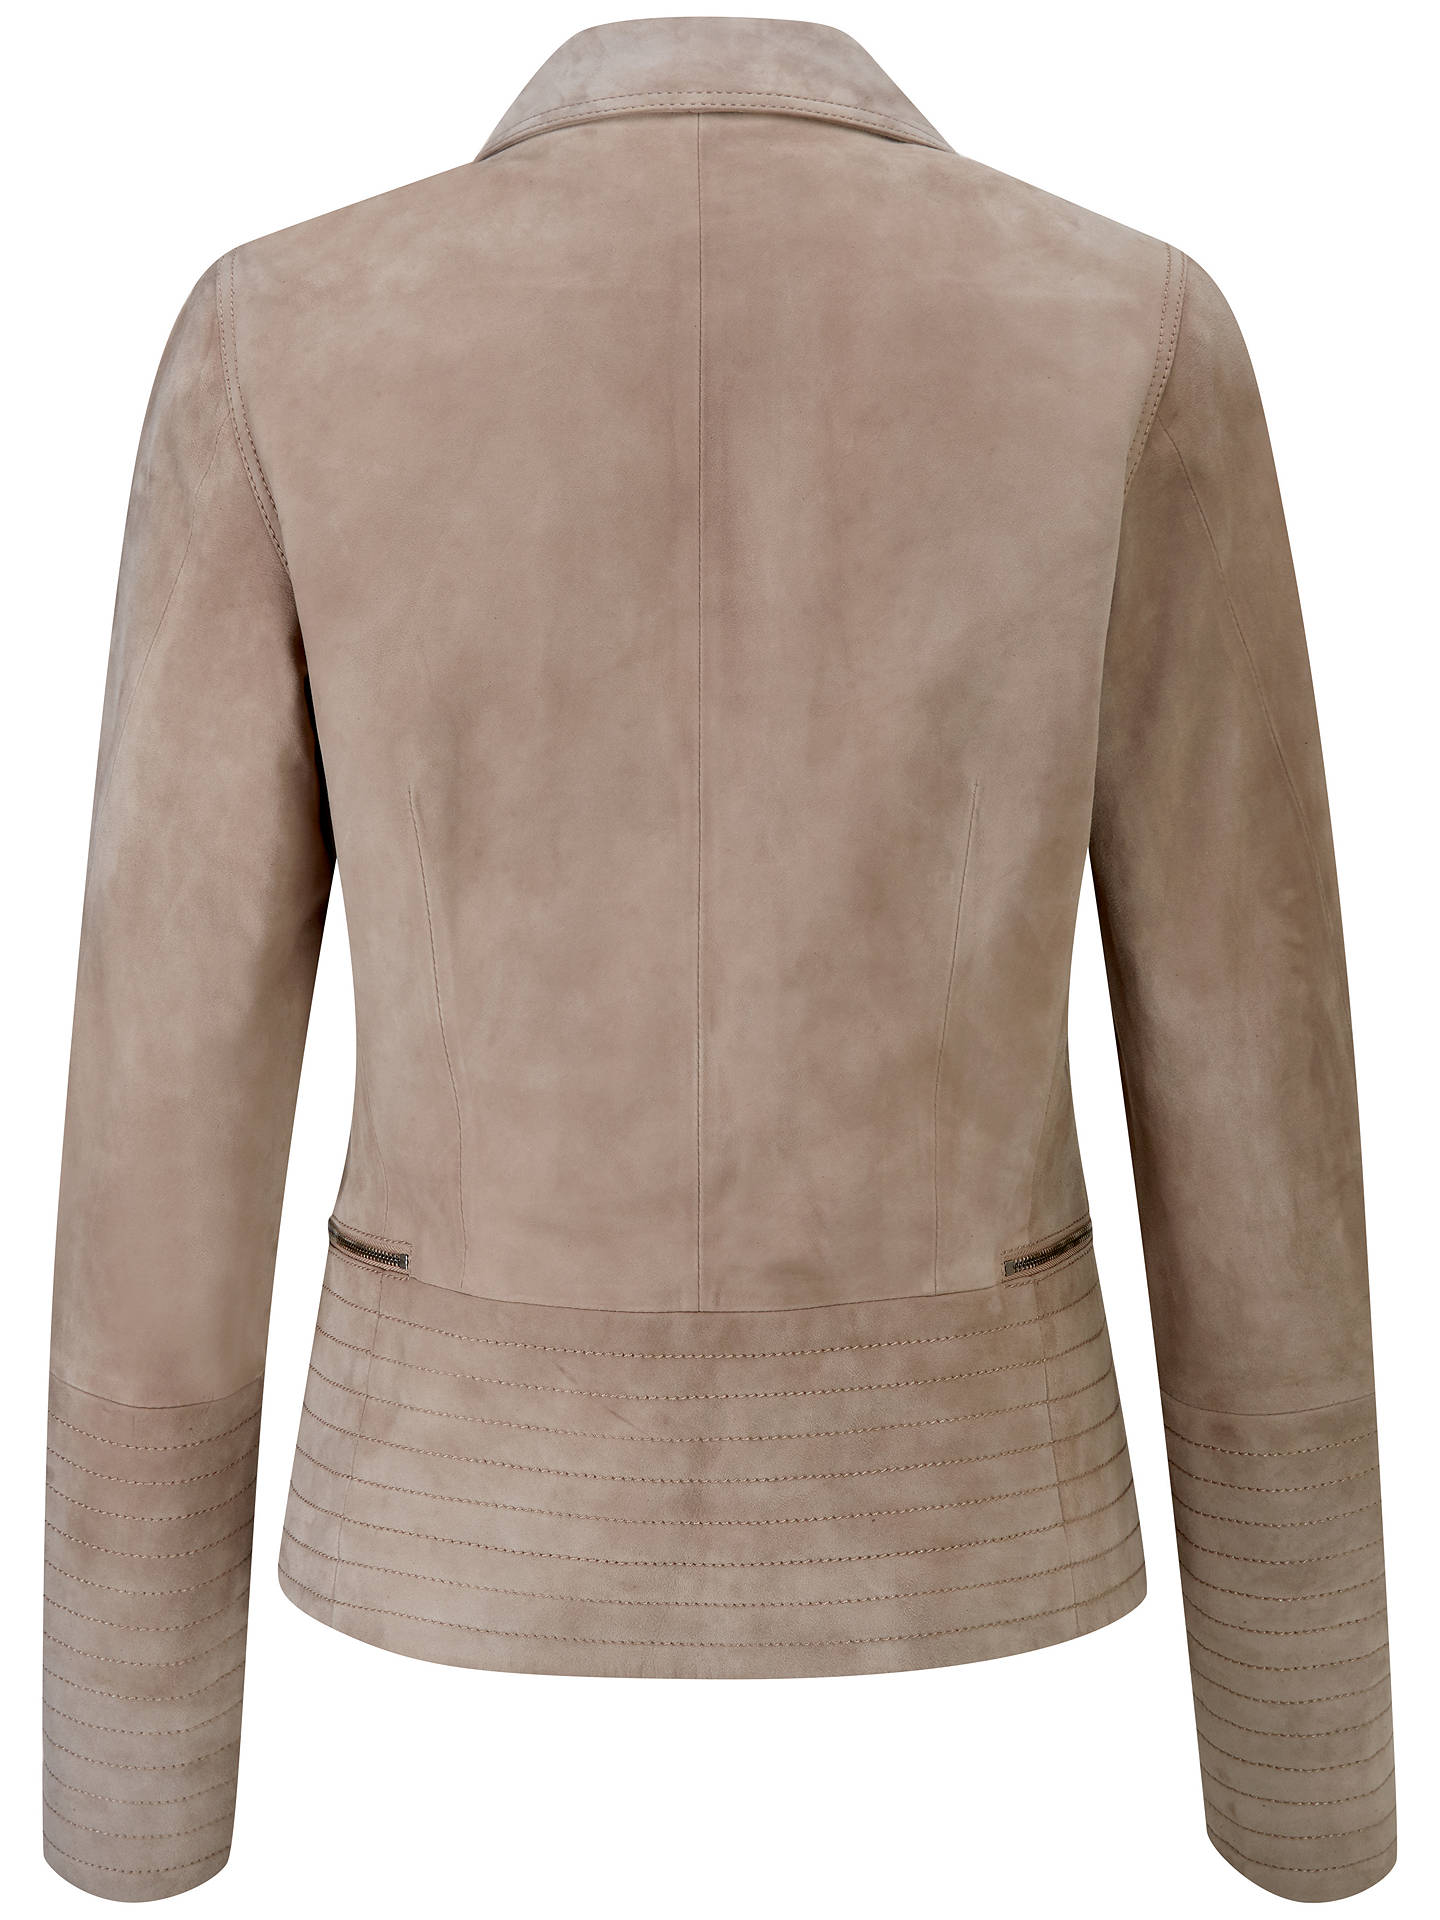 BuyPure Collection Suede Biker Jacket, Soft Taupe, 8 Online at johnlewis.com